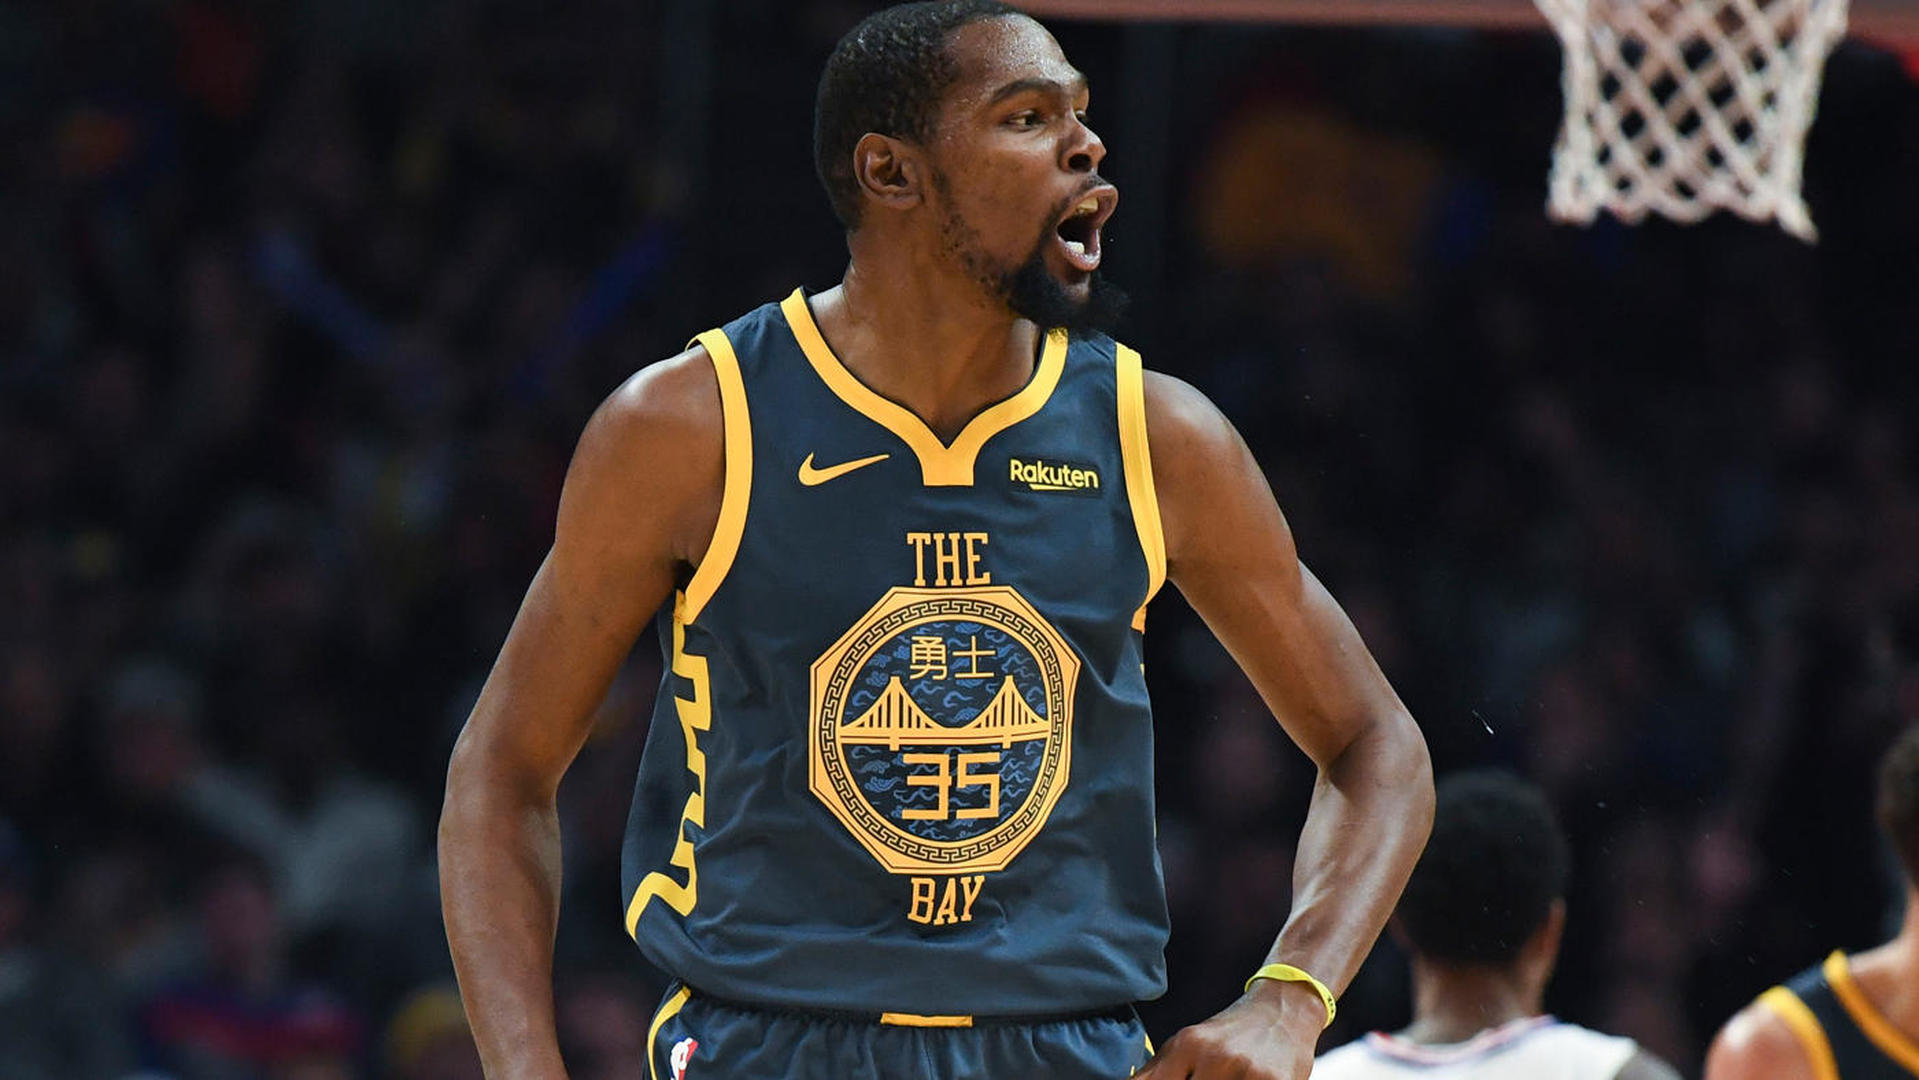 Warriors suspended Draymond Green for daring Kevin Durant to leave in free agency, report says